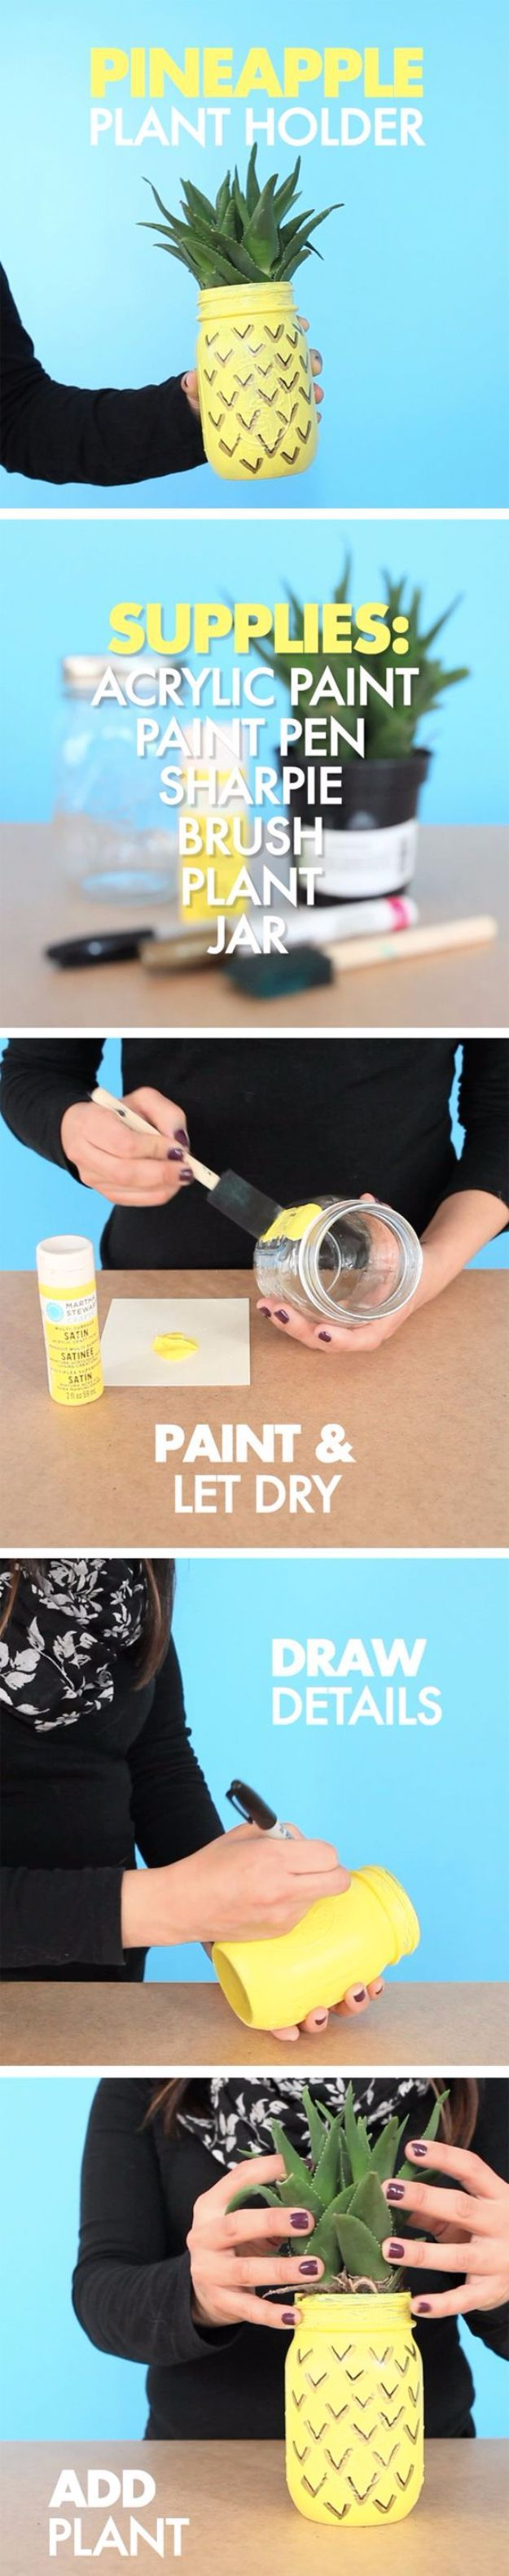 Pineapple Mason Jar Planter, Mason Jar Crafts You Can Make In Under an Hour, Painting Mason Jars, DIY, Quick Mason Jar Projects, DIY Projects, Home Decor, DIY Gifts, Creative Ideas for Mason Jars, Step- By-Step, Tutorial,  Instructions, Planter